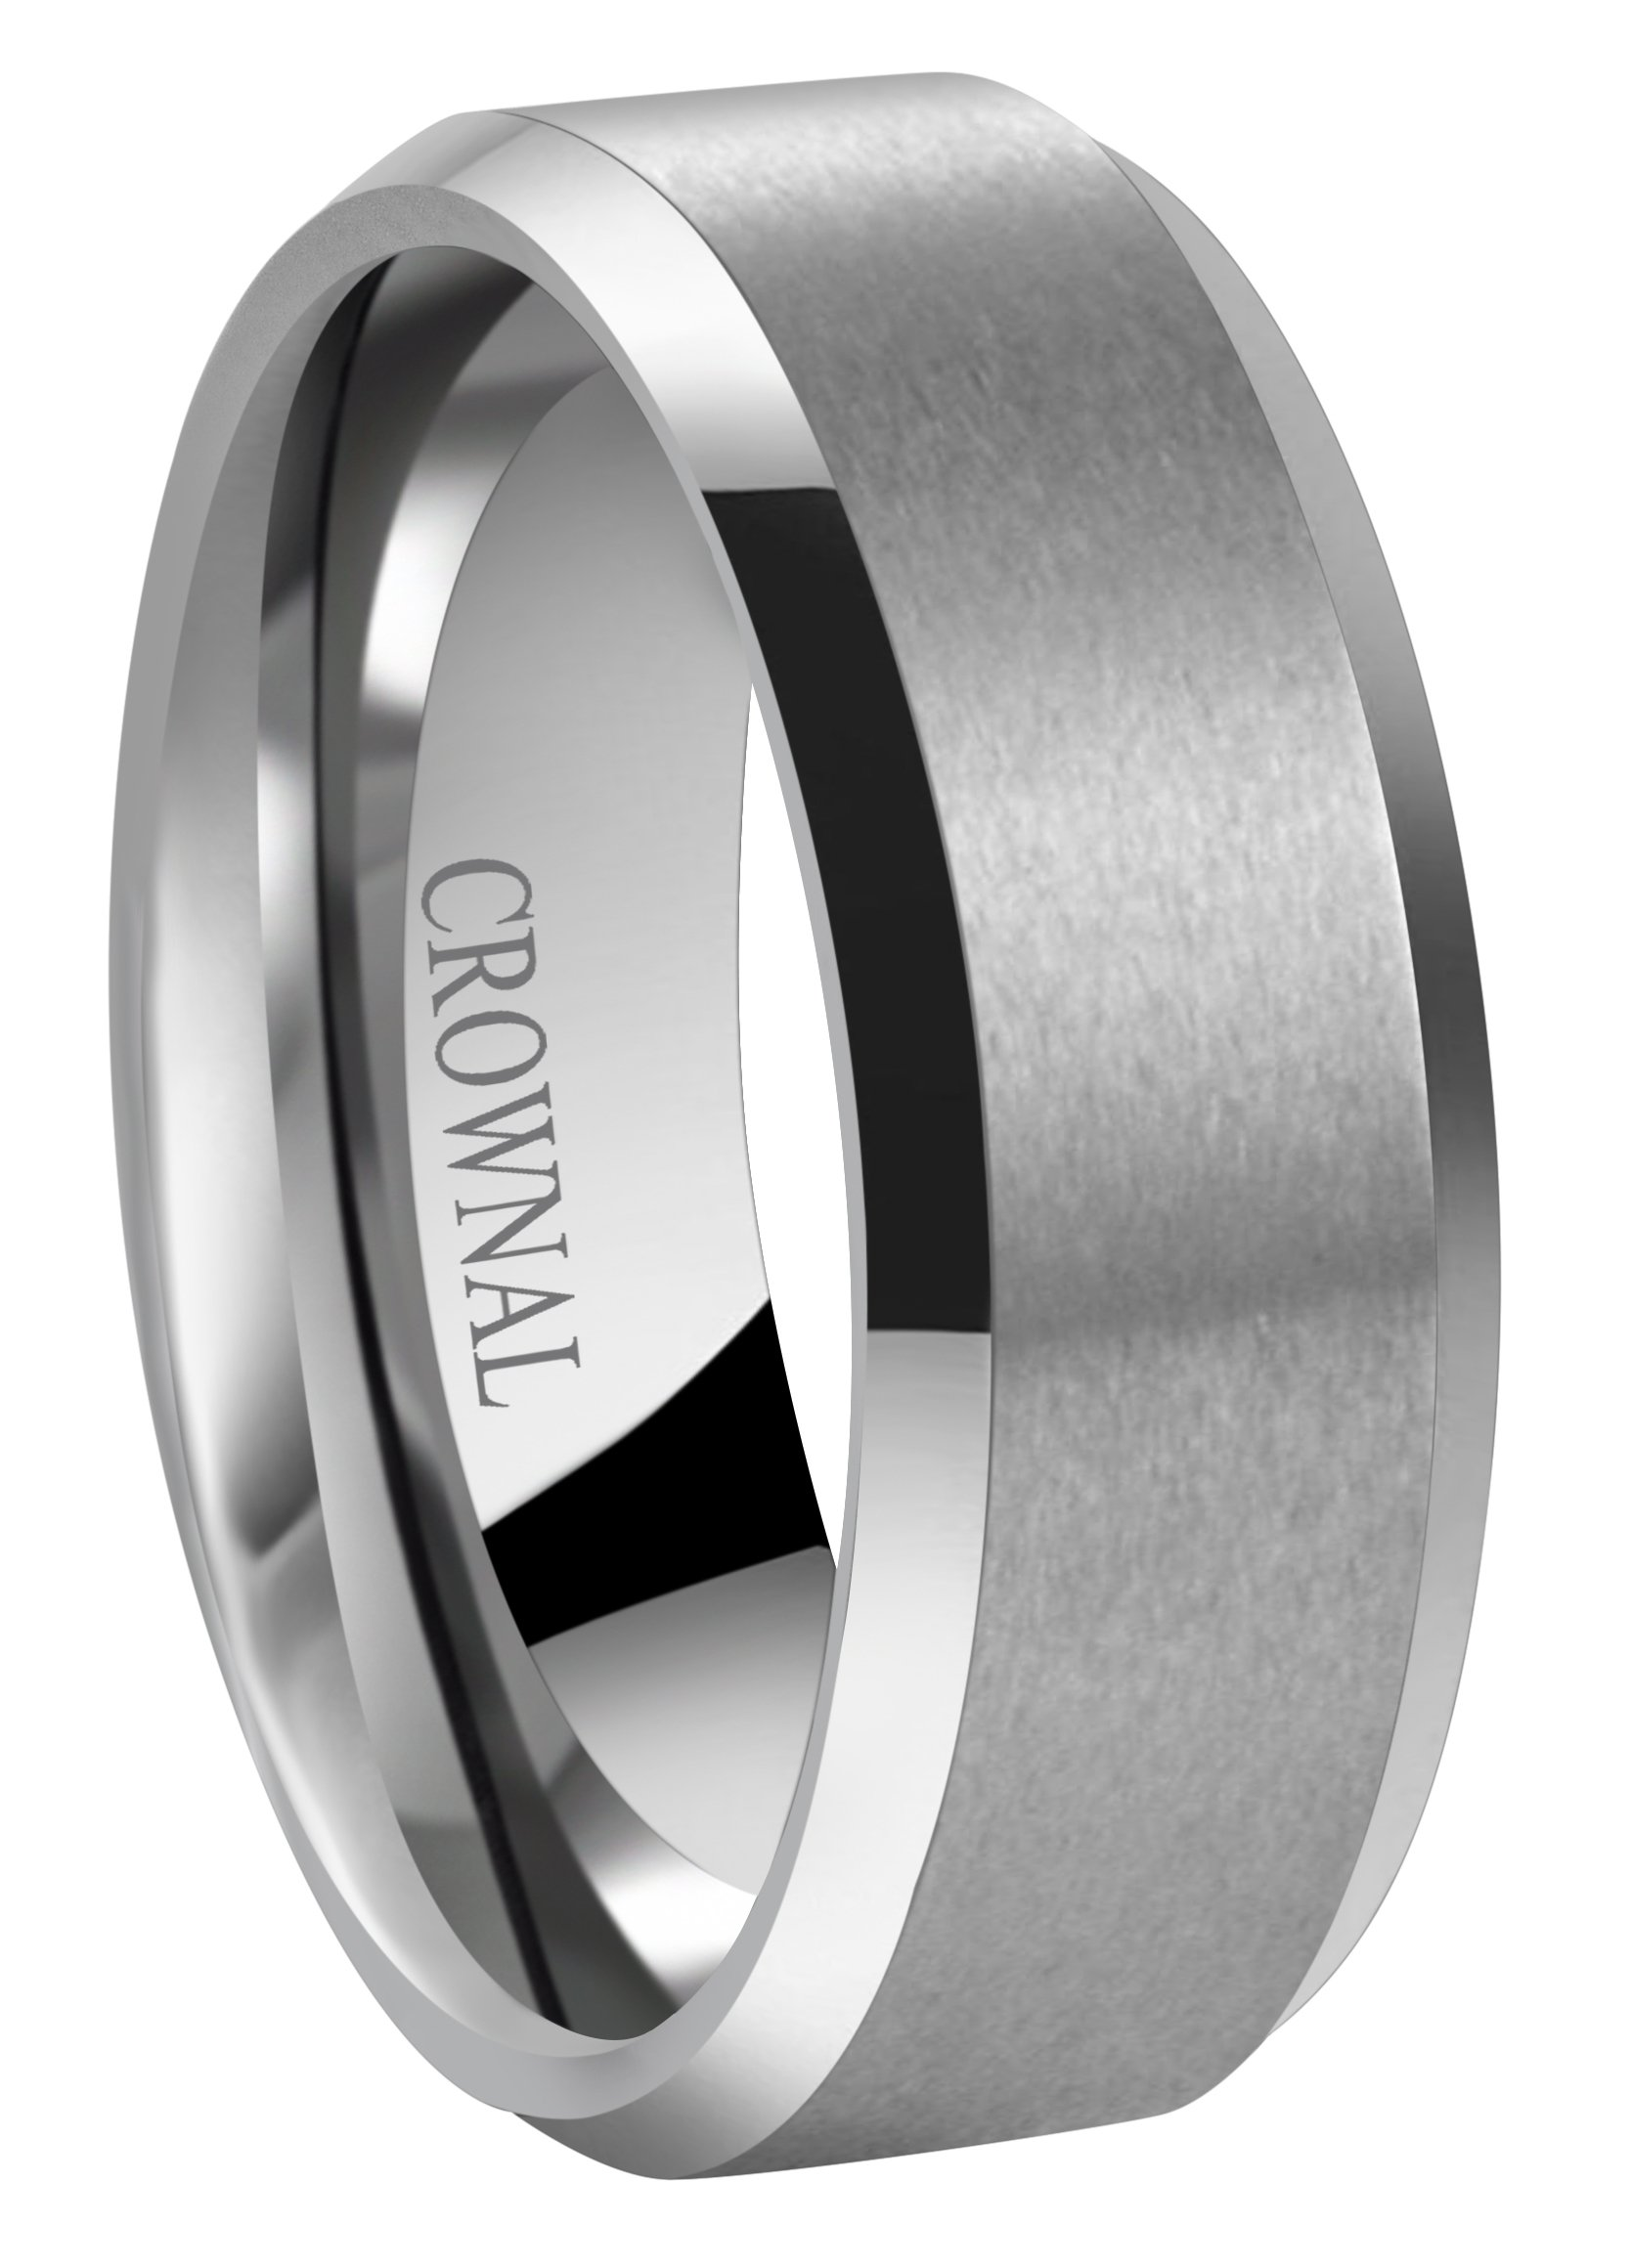 Crownal 6mm 8mm 10mm Tungsten Carbide Wedding Band Ring for Men Women in Comfort Fit Beveled Edges and Matte Finish Size 5 To 17 (8mm,9)